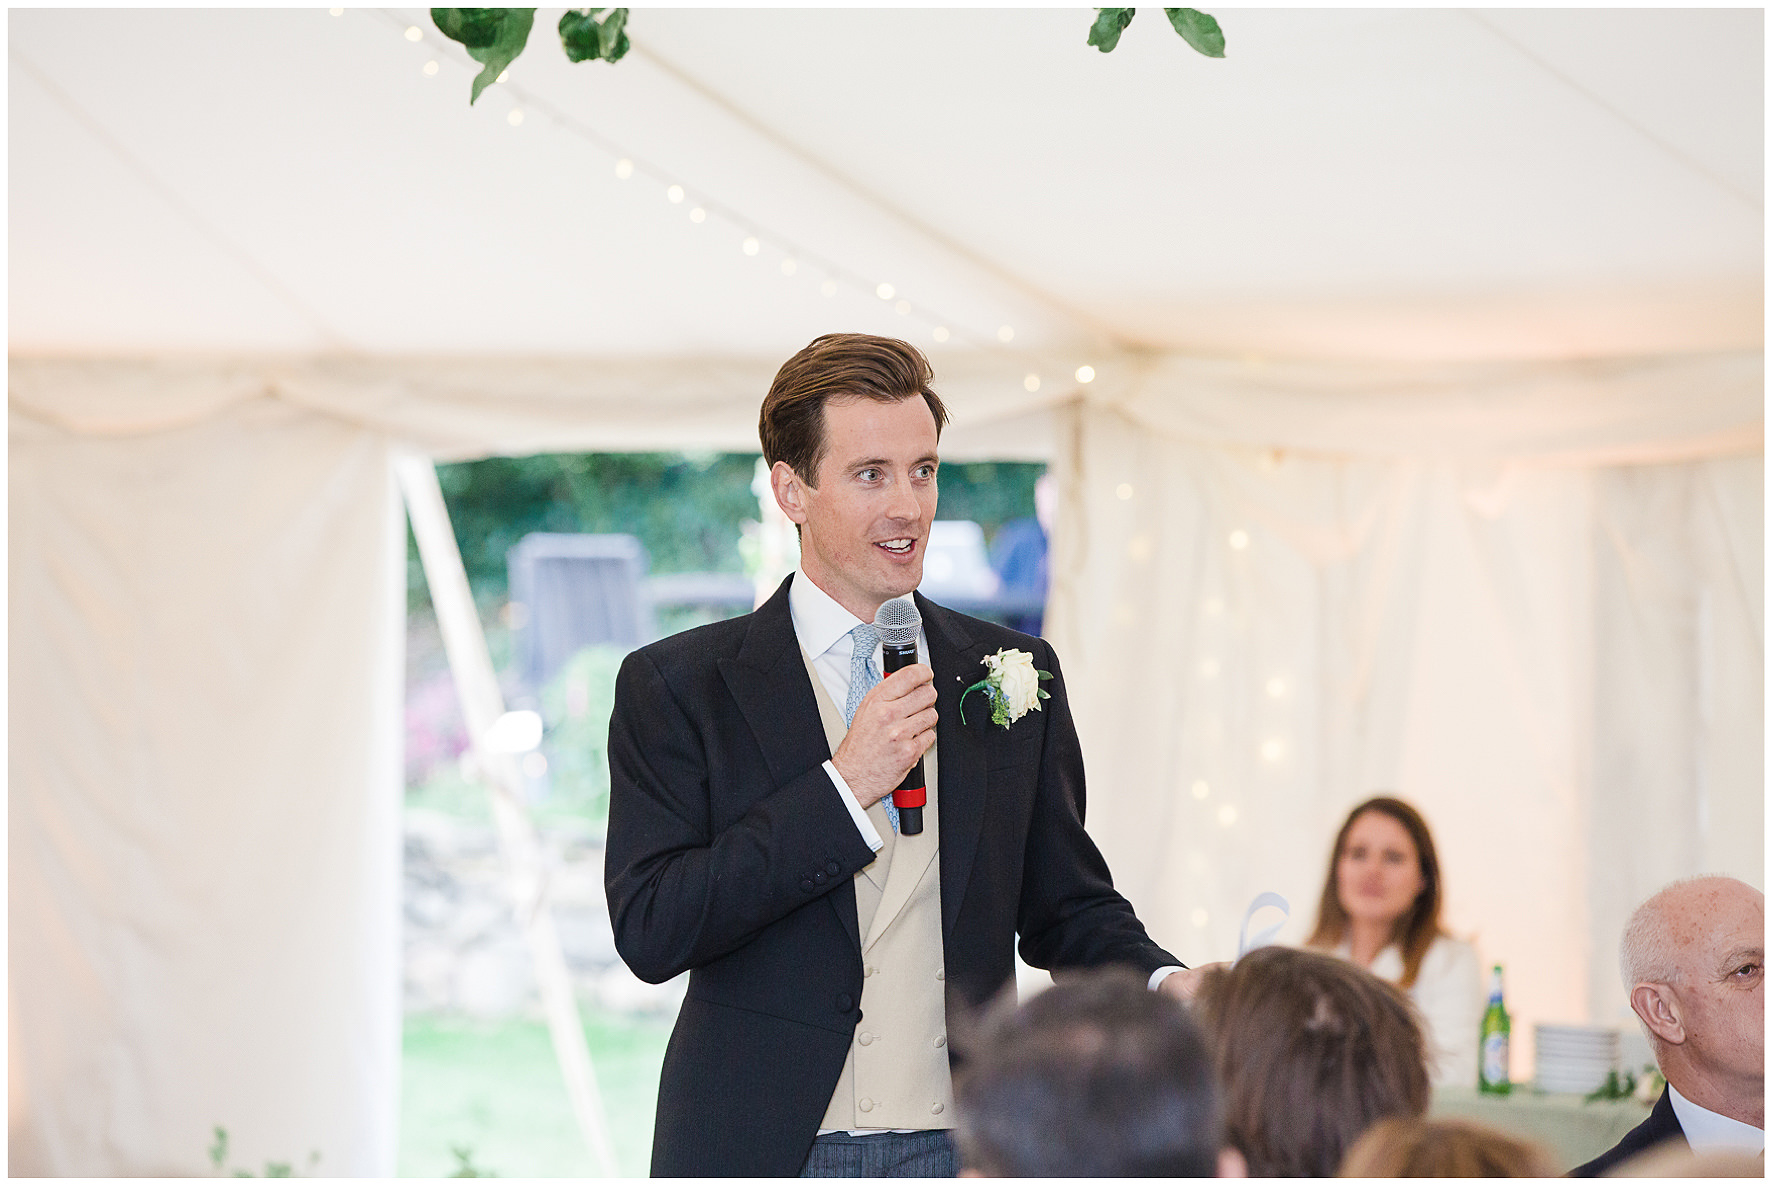 Groom delivering his speech